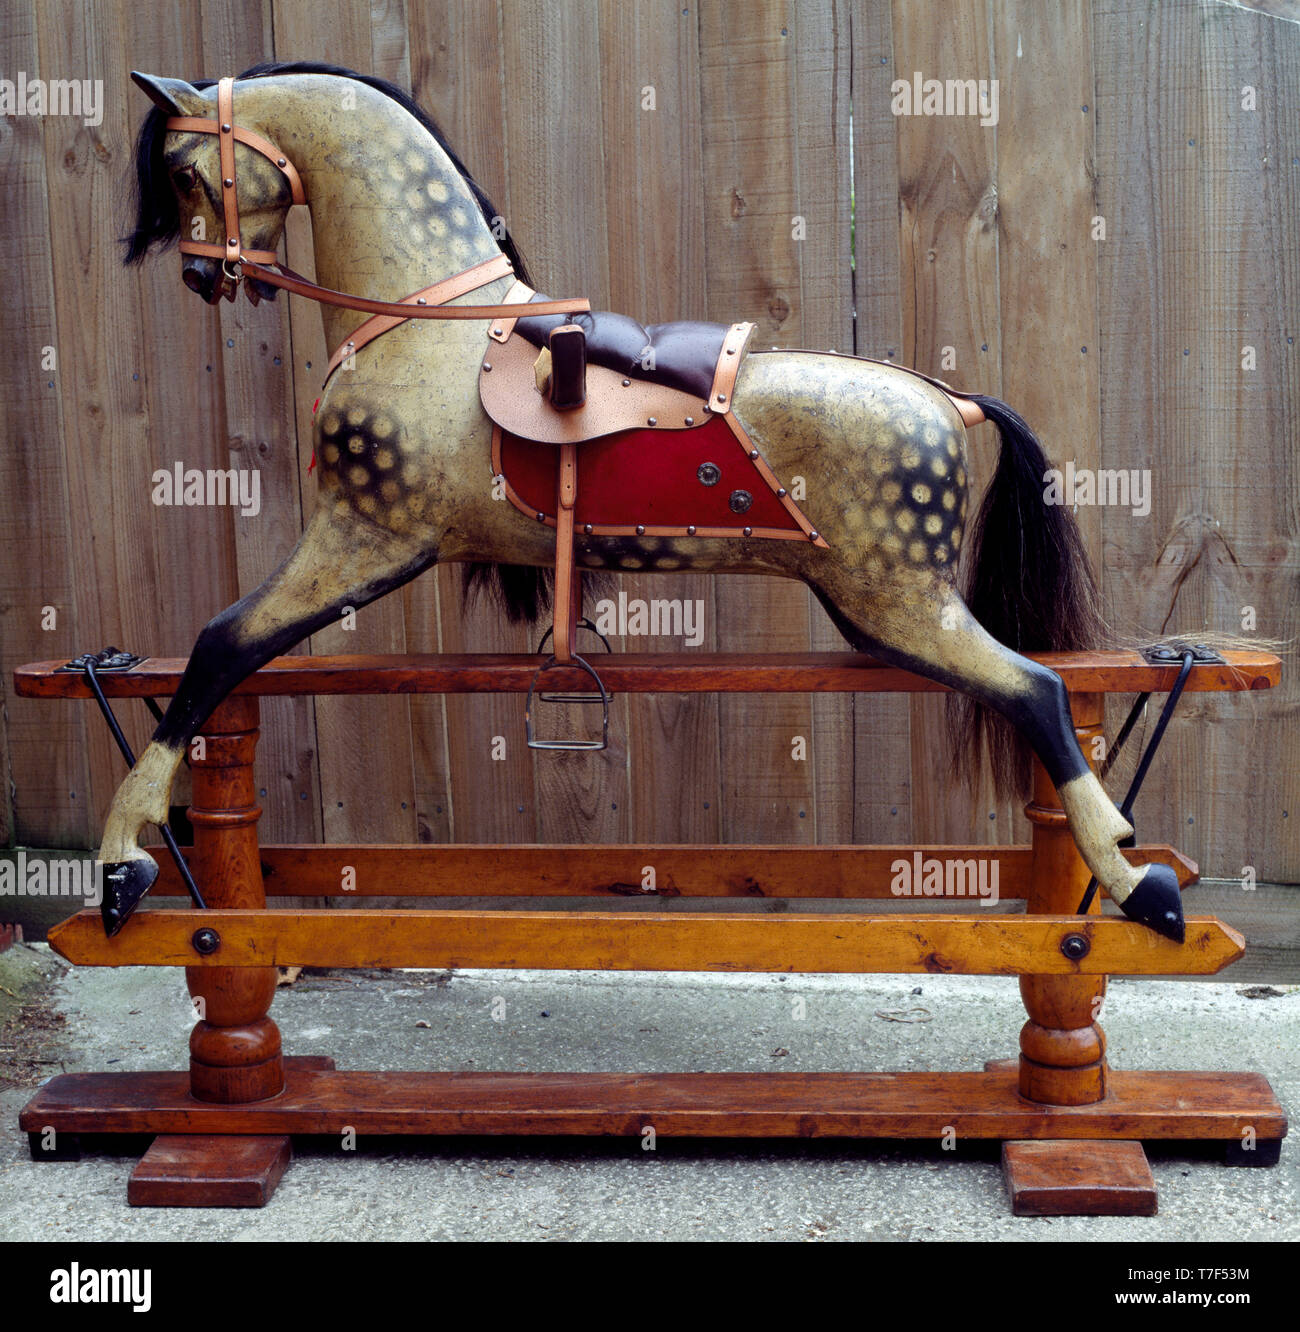 Vintage Rocking Horse High Resolution Stock Photography And Images Alamy